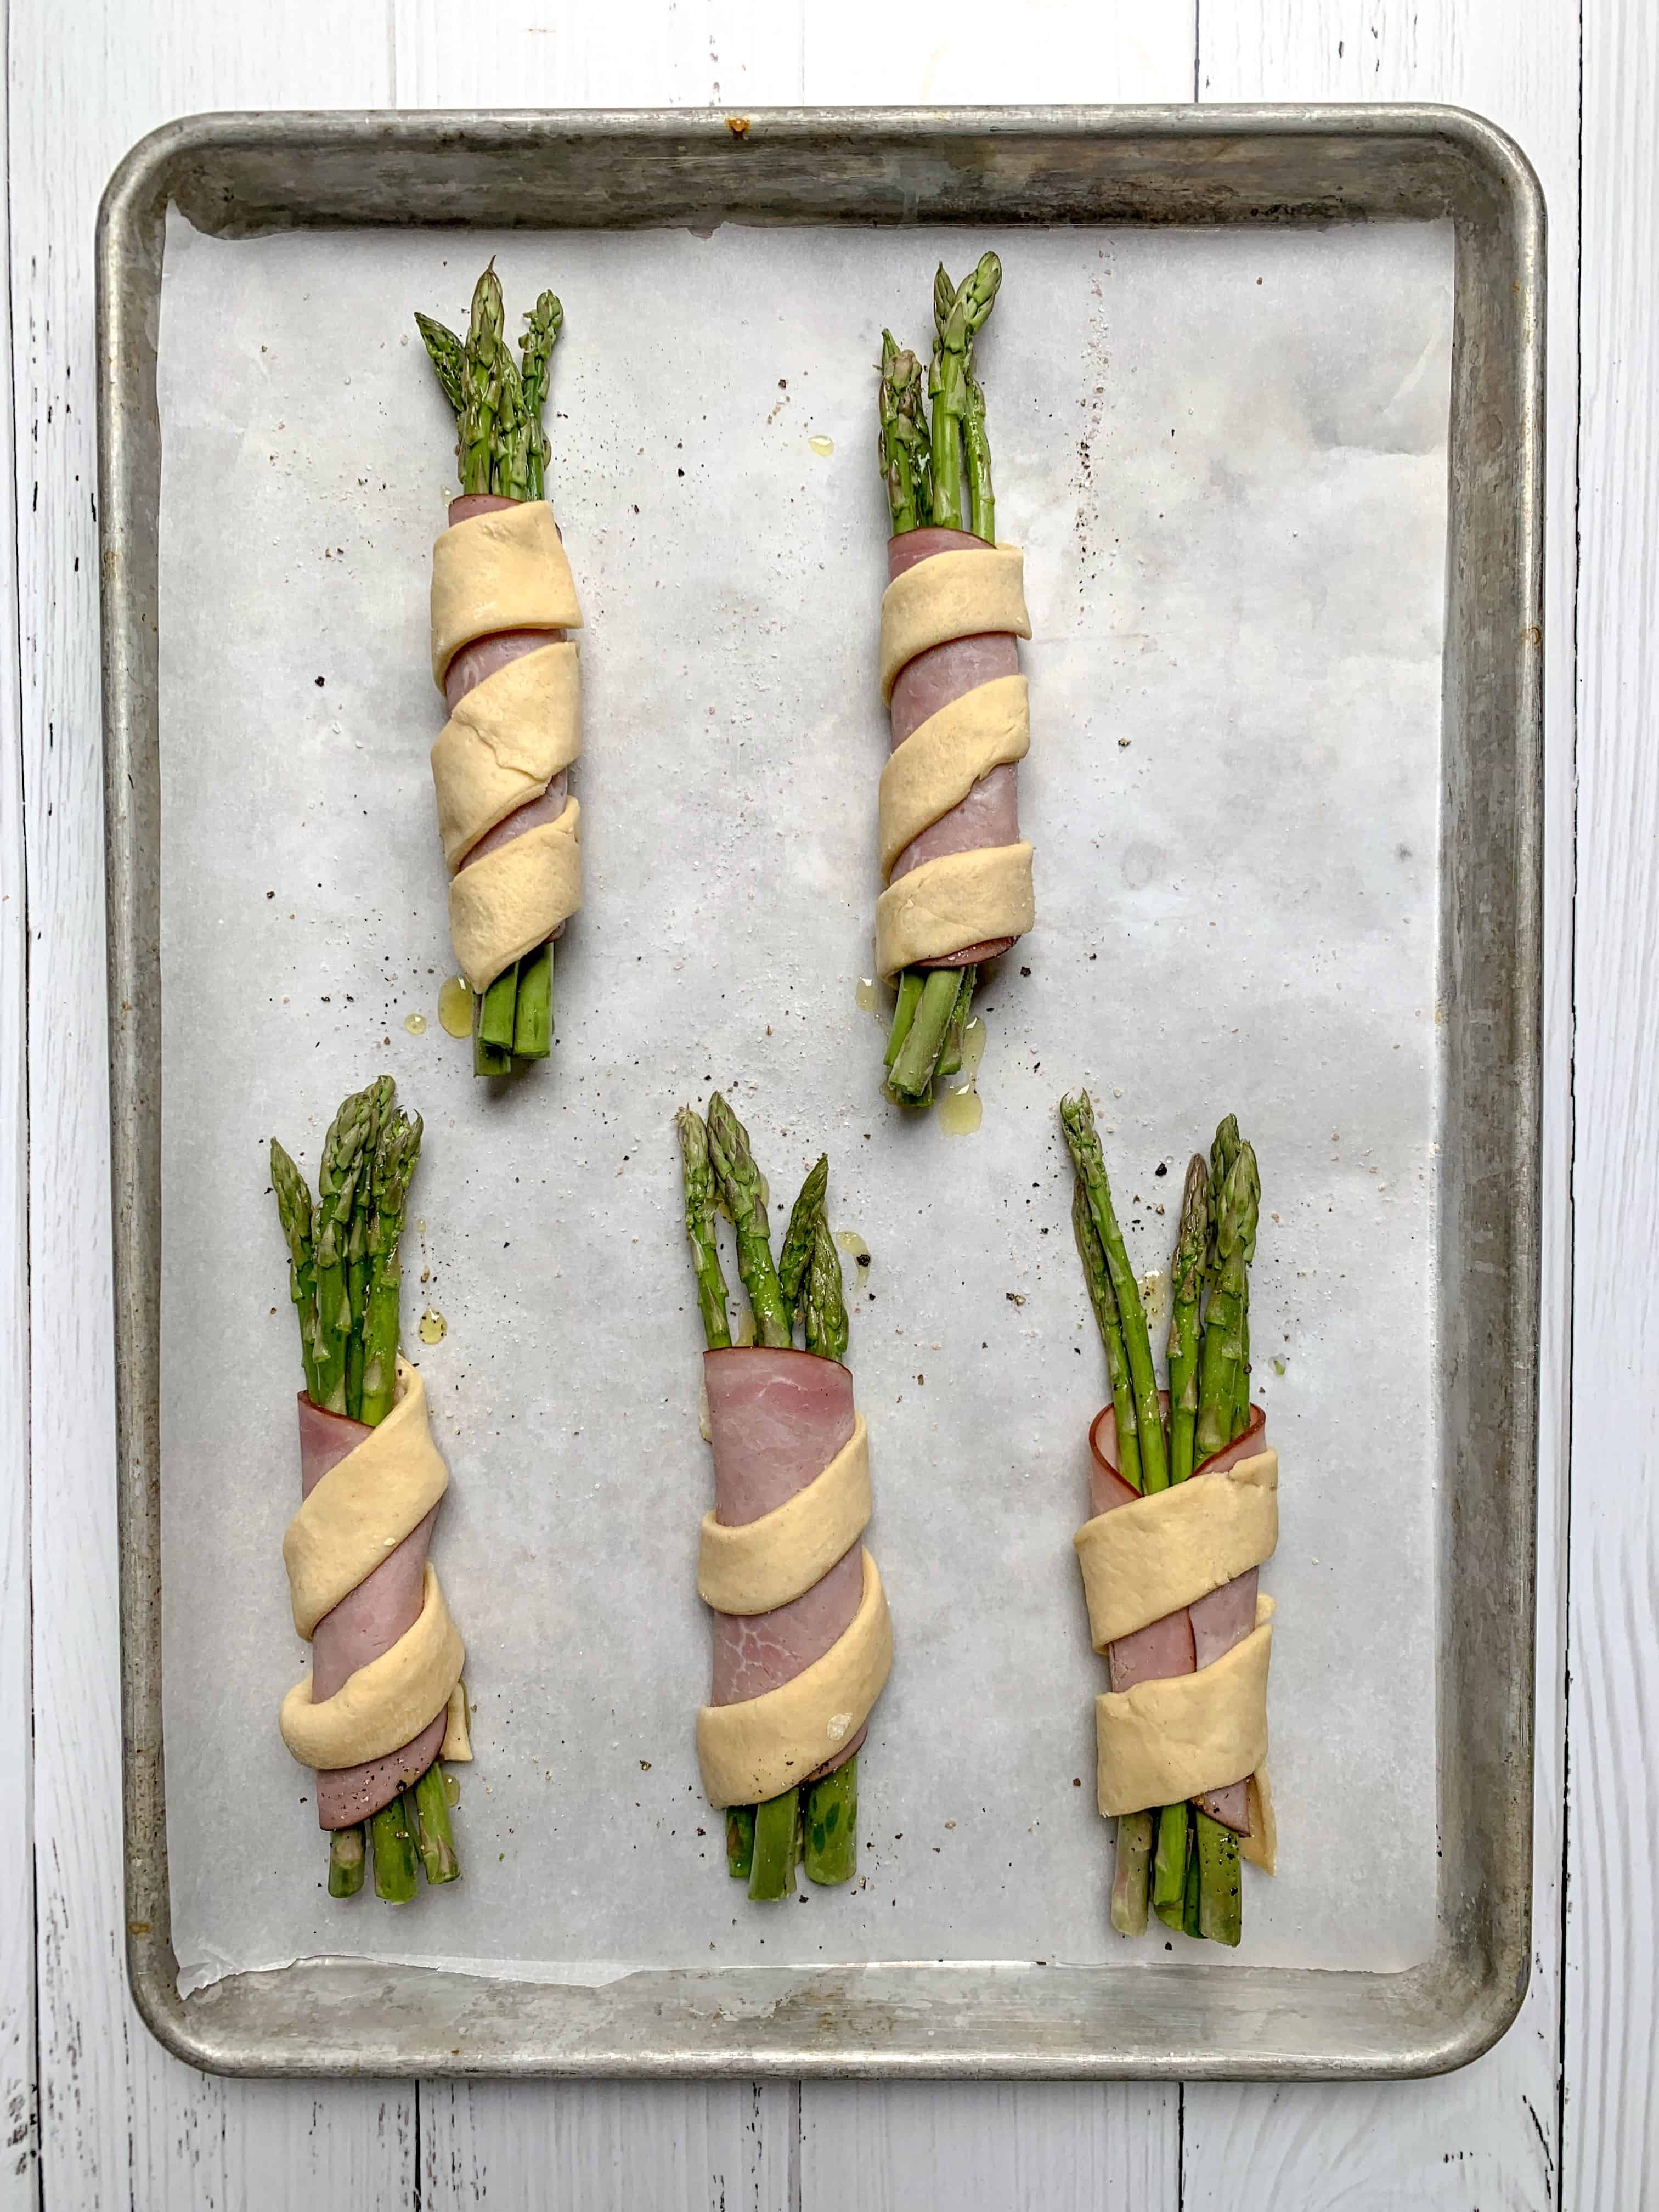 aerial view of the bundles of wrapped asparagus before being baked.